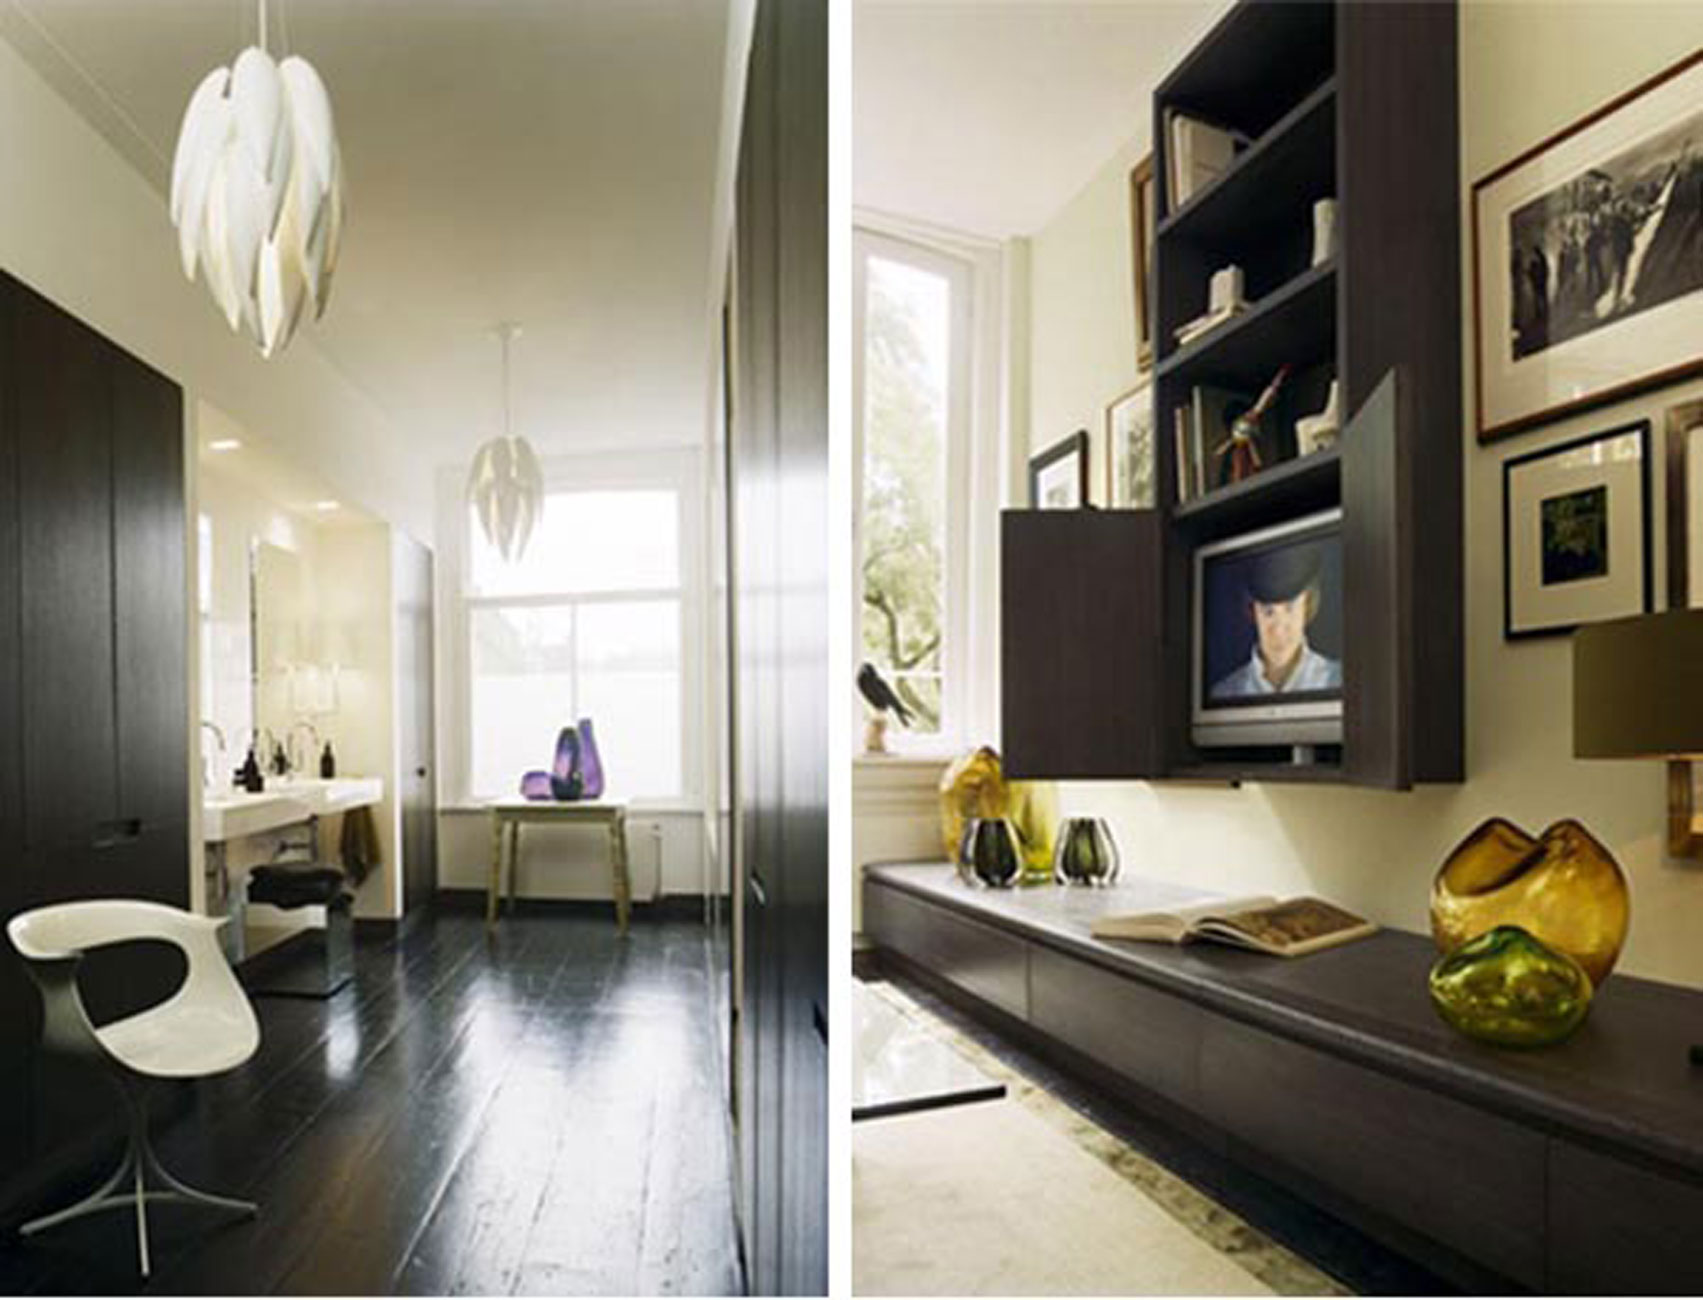 Contemporary Design and Dark Interior in Apartment Ideas by Kate ...